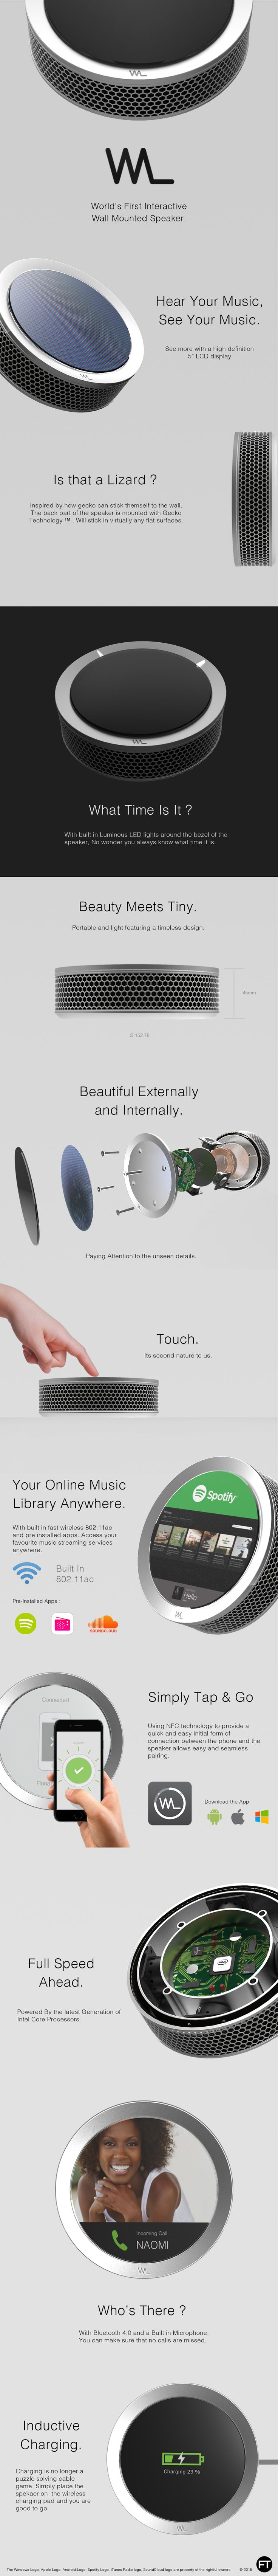 Industrial Design Project of a Wall mounted Speaker                                                                                                                                                     More